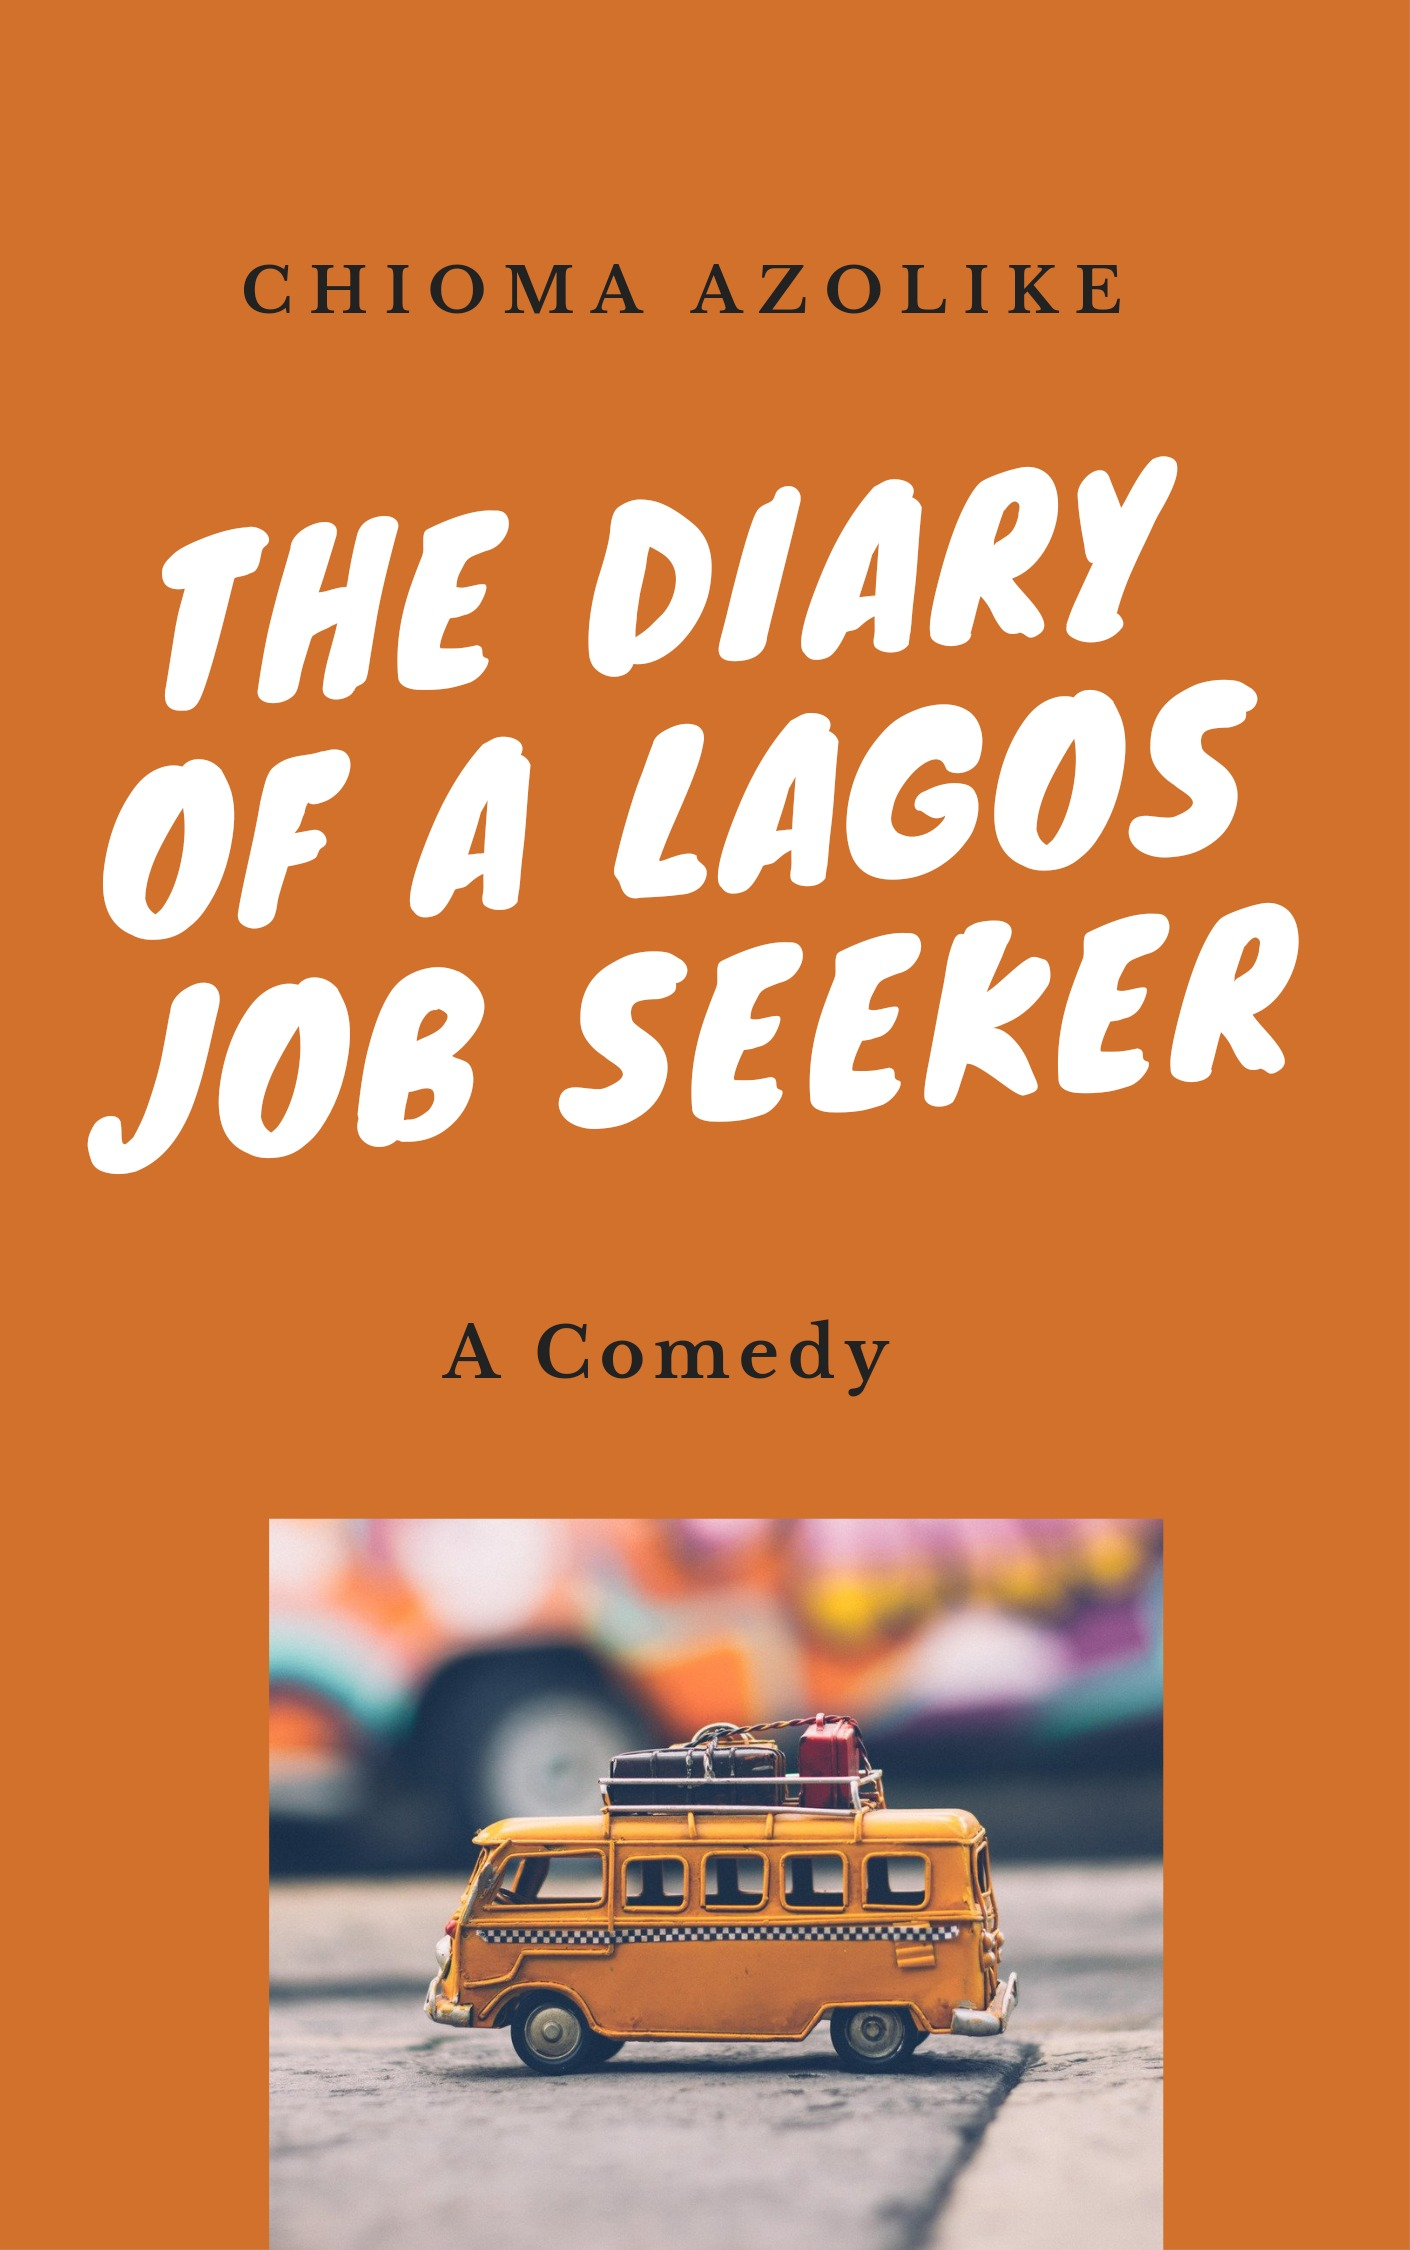 The Diary of a Lagos Job Seeker